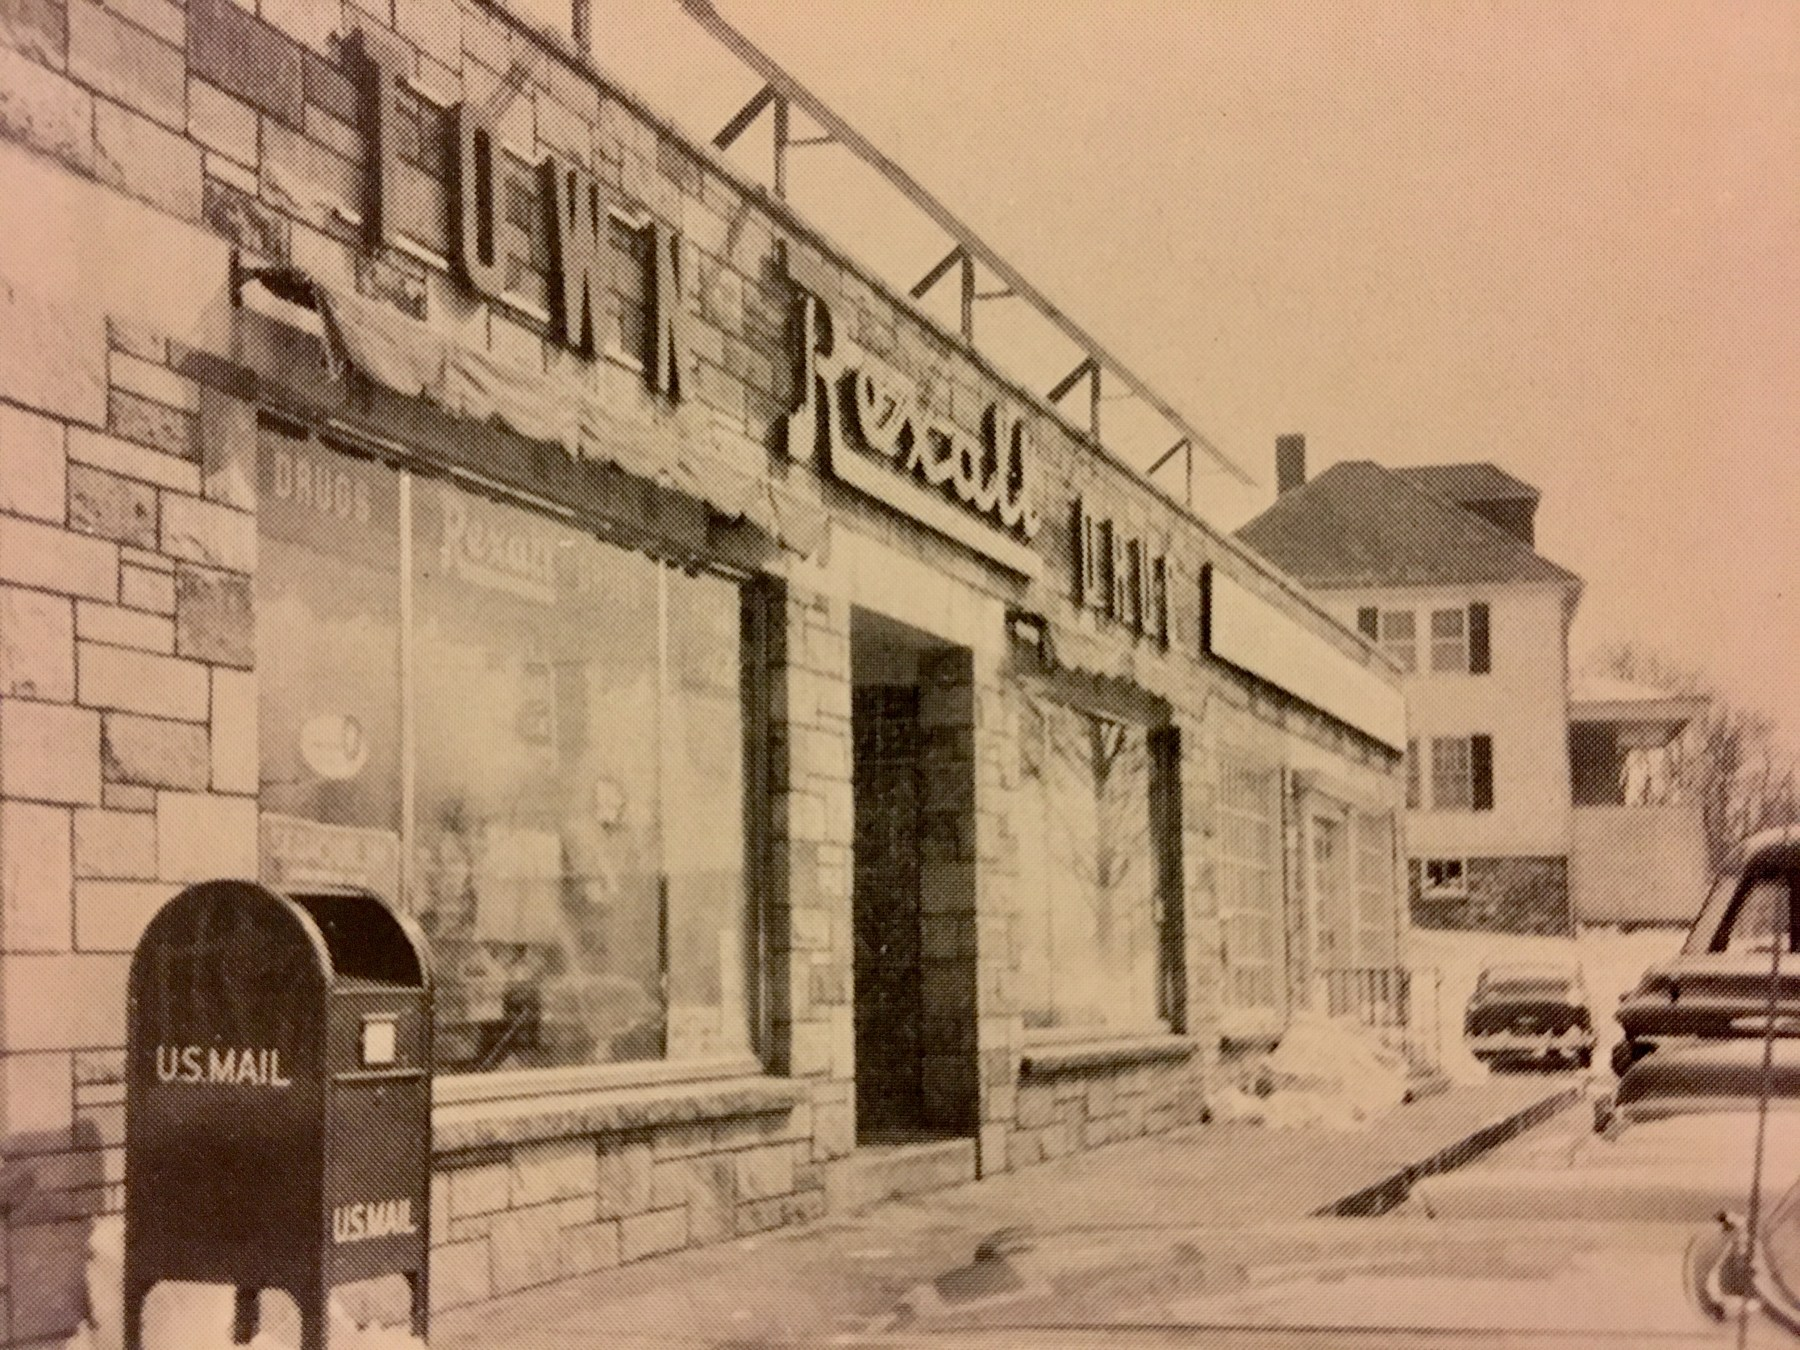 Rexall Drug, Burlington MA, late 1950s